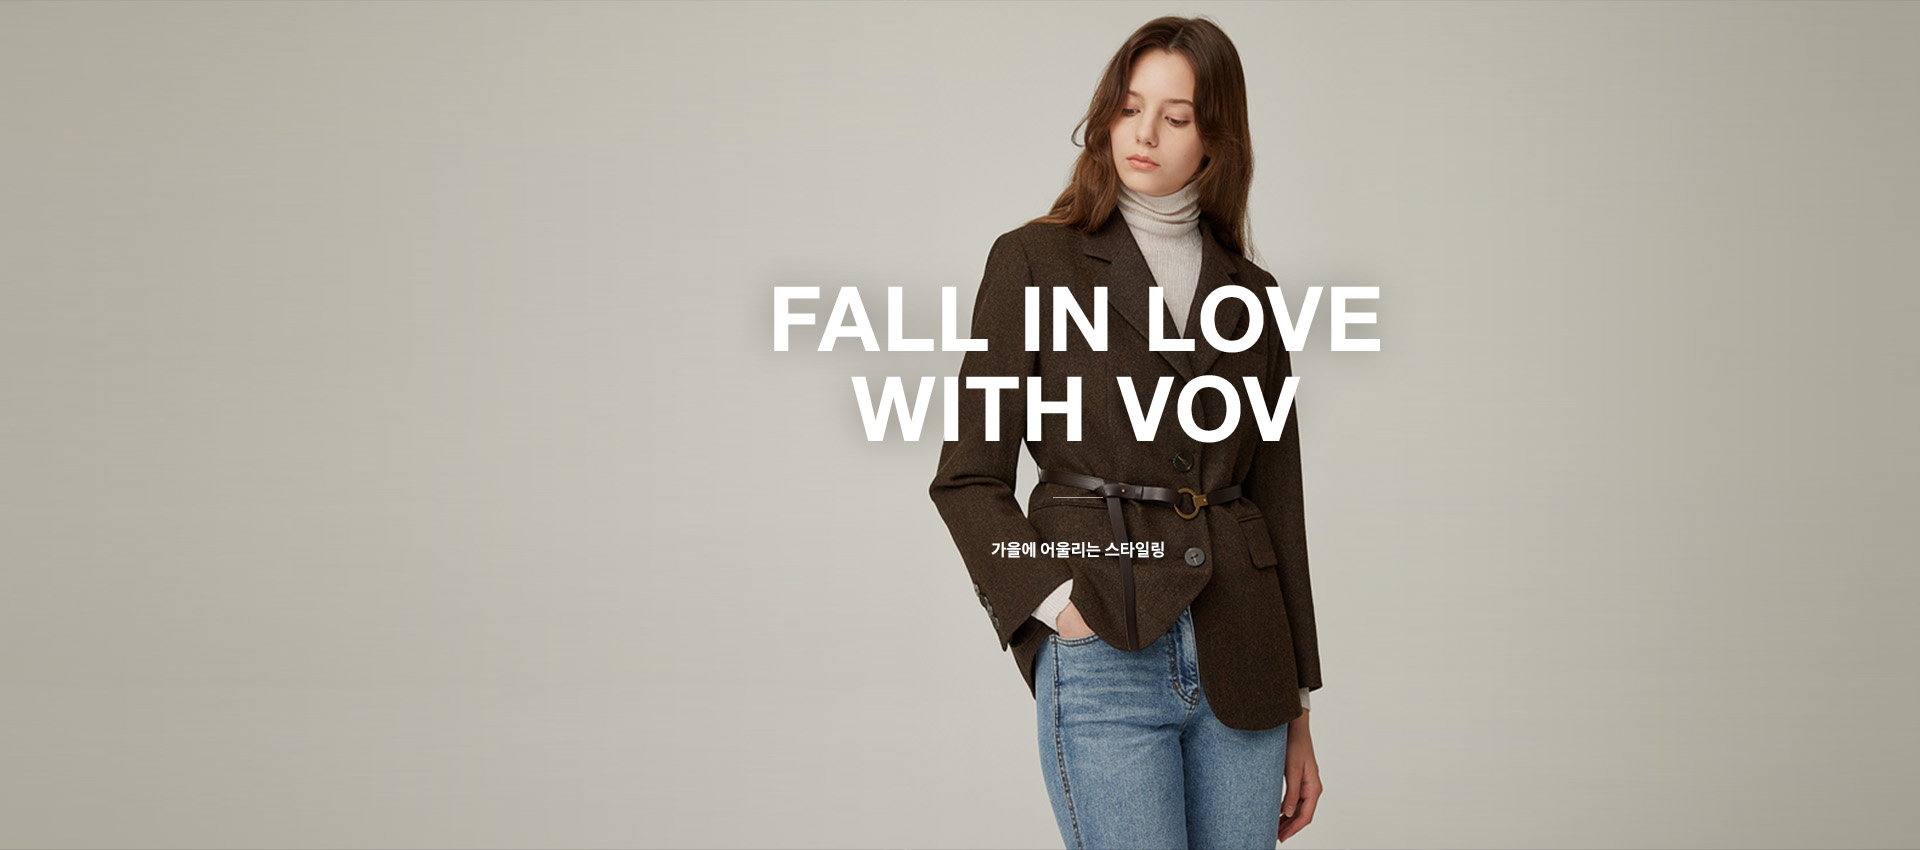 FALL IN LOVE WITH VOV